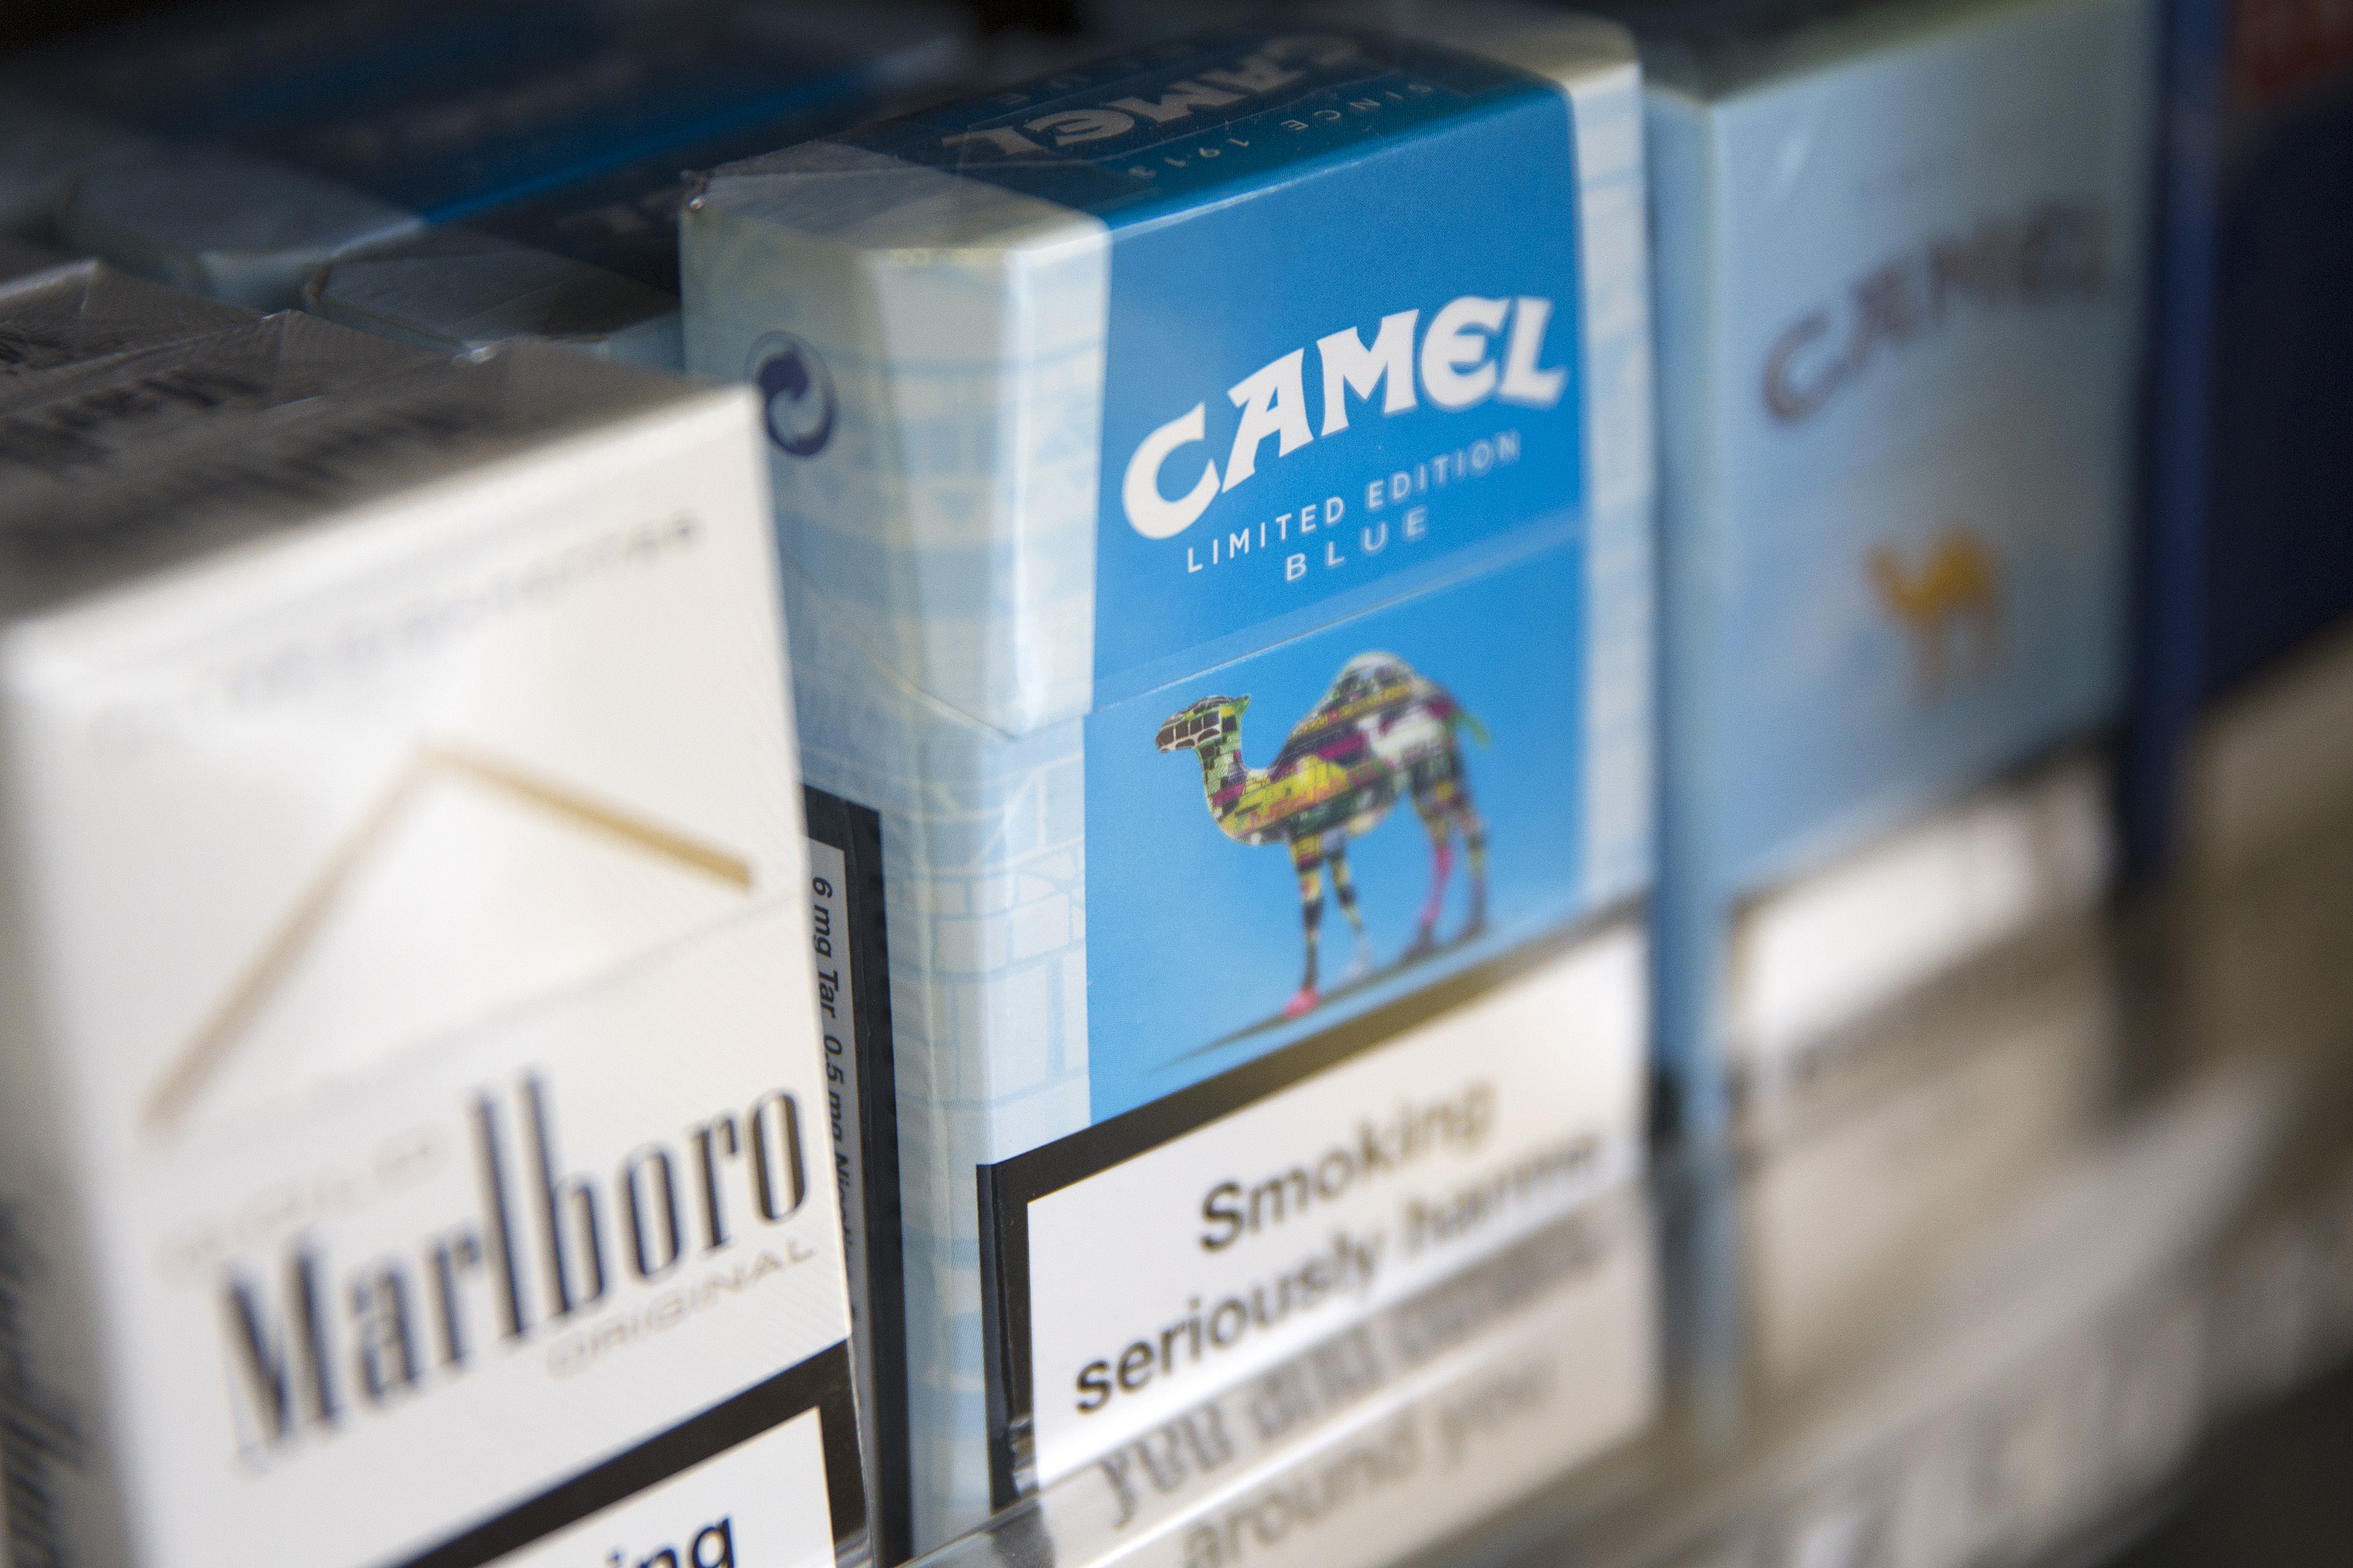 Packs of Camel cigarettes, manufactured by Reynolds American Inc., in a display rack in London on July 11, 2014.